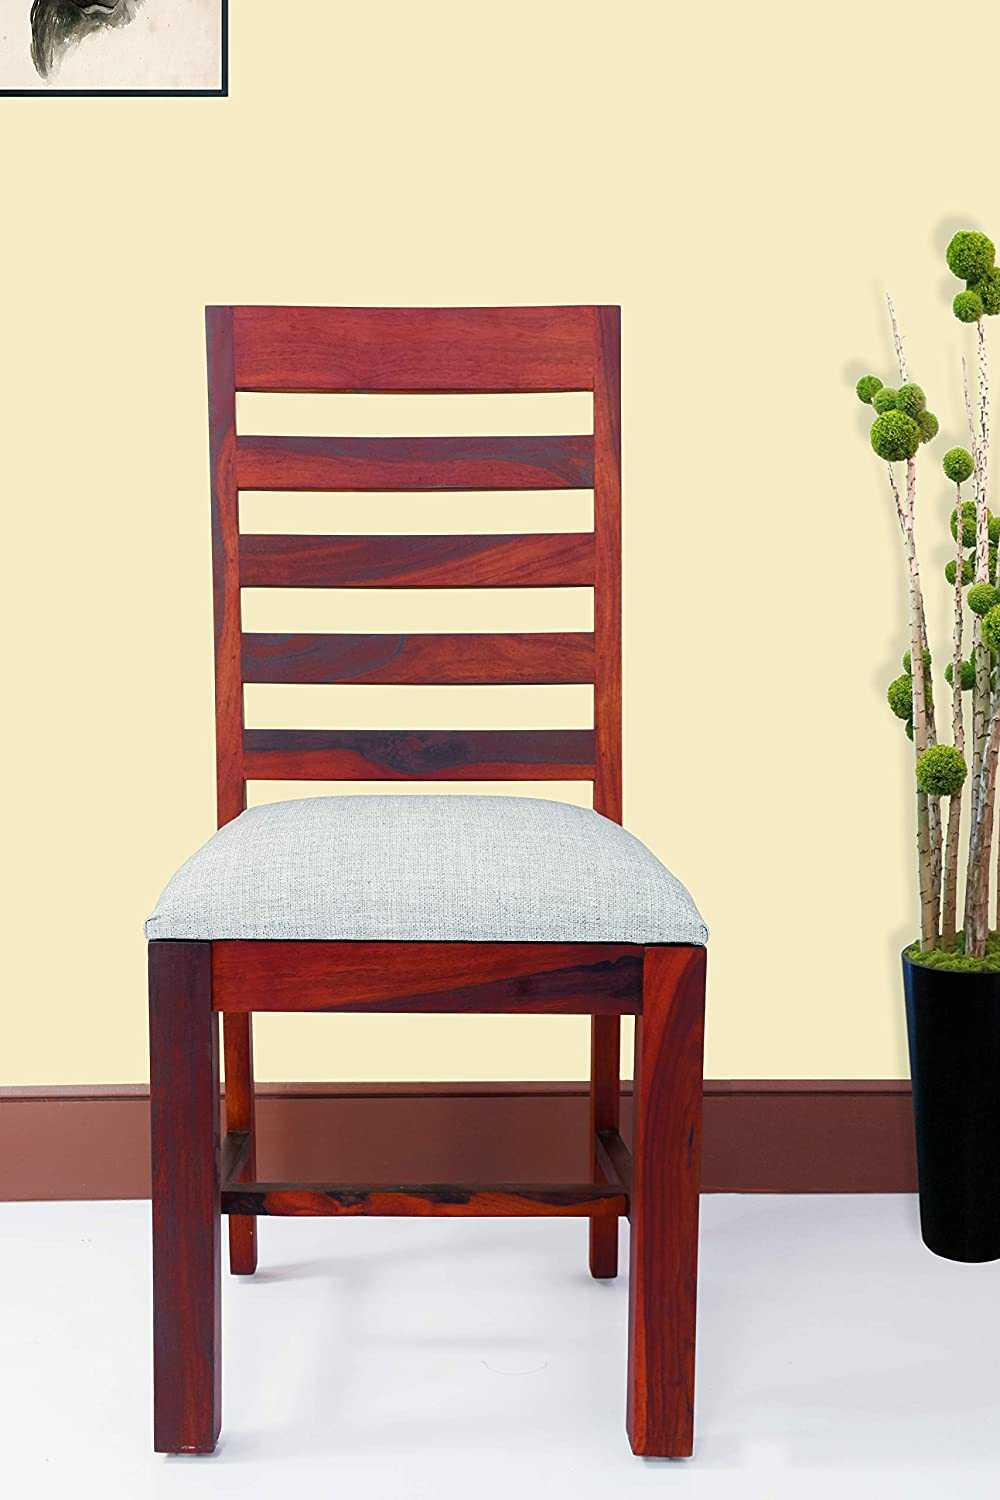 Lefik Sheesham Wood Dining Chair for Home (Honey Finish)